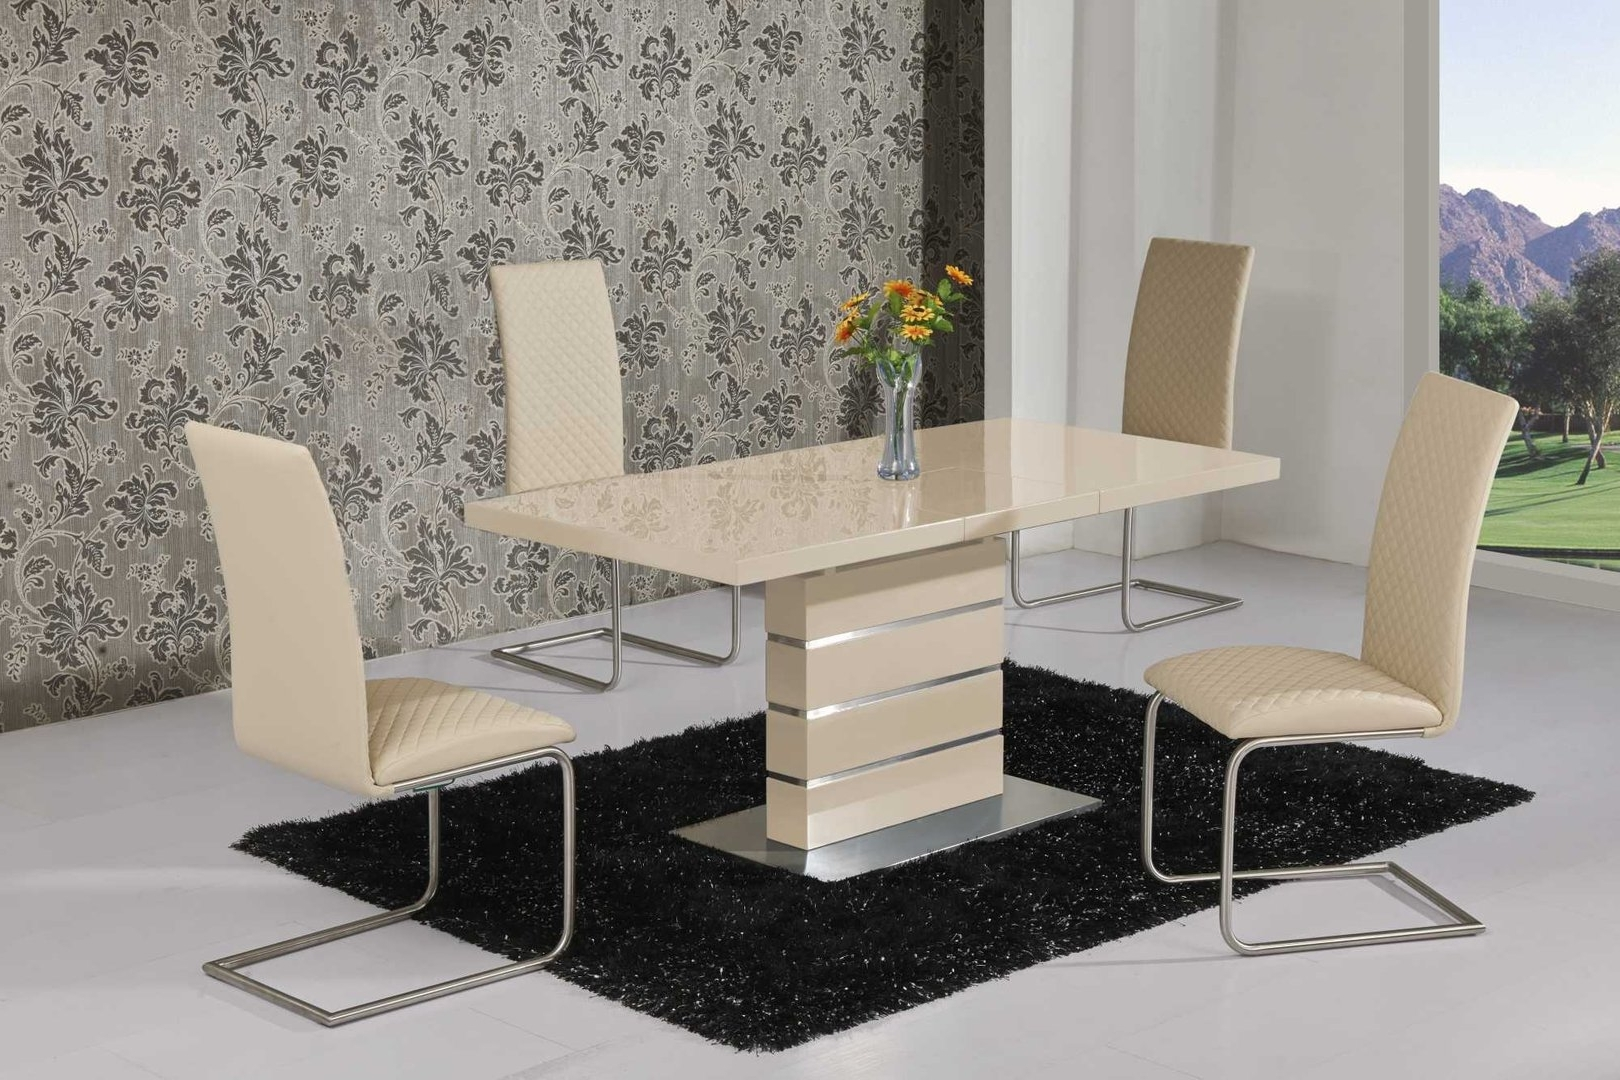 2018 Cream Dining Tables And Chairs Intended For Extending Cream High Gloss Dining Table And 6 Cream Chairs (View 3 of 25)